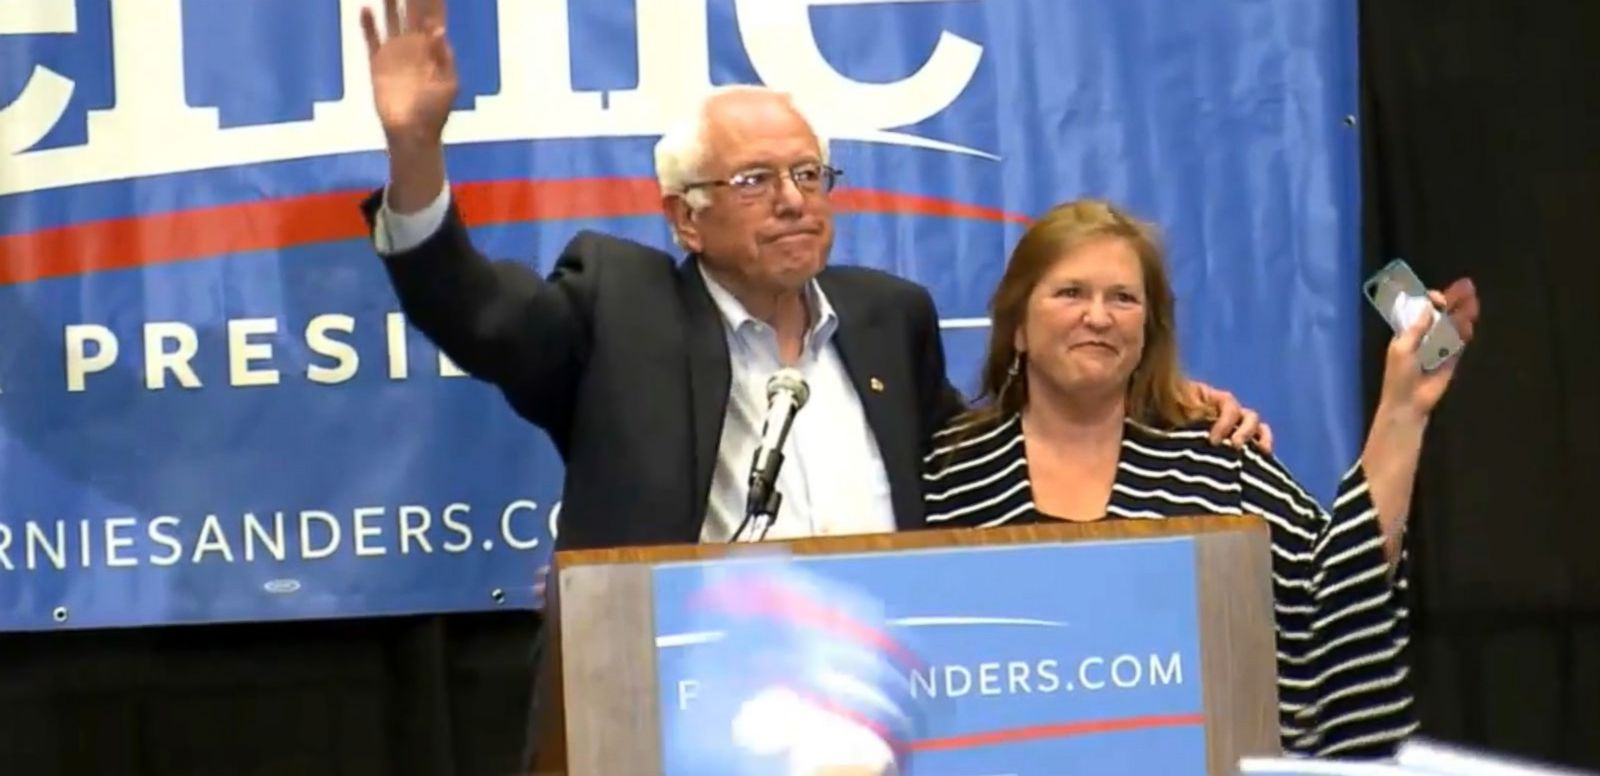 VIDEO: Bernie Sanders' Surge in Polls Puts Pressure on Hillary Clinton's Campaign